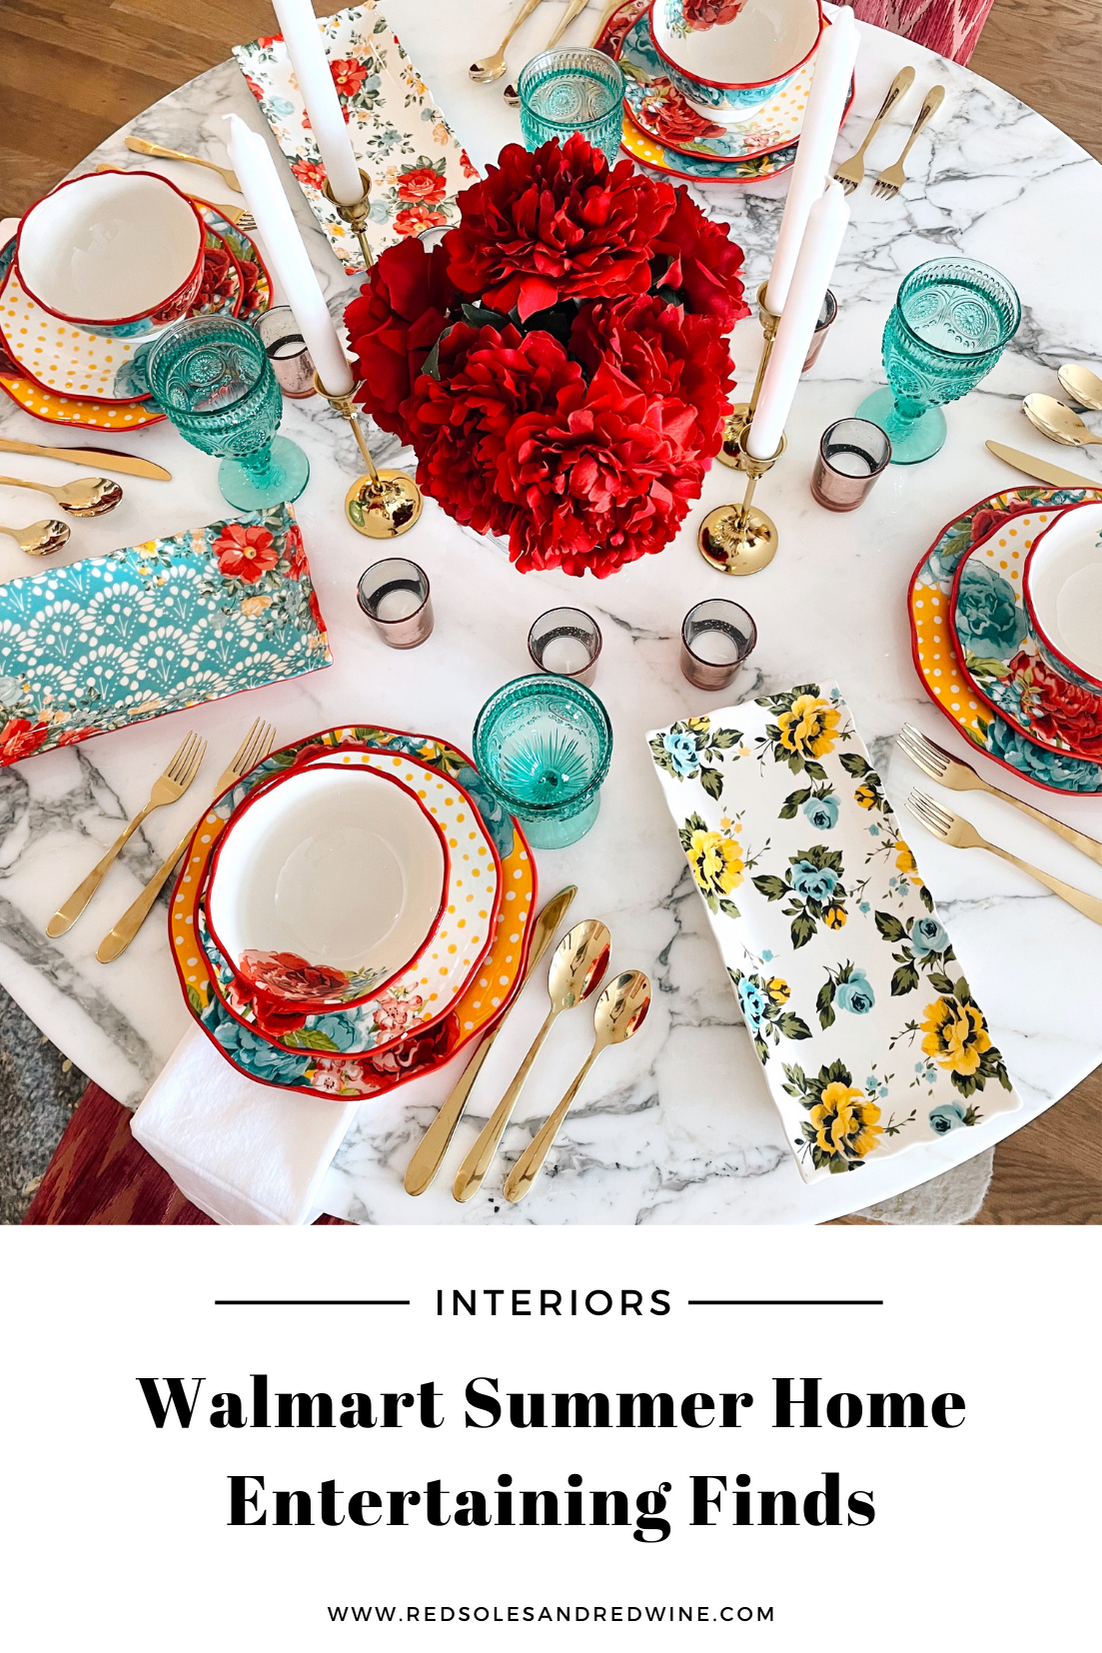 Summer Home Entertaining Finds from Walmart, summer party table setting, vibrant tablescape, Summer table decor, Summer dinner party ideas, affordable vibrant table top ideas, summer tabletop ideas, Walmart home decor, tropical decor ideas, tropical party ideas, girly party decor, gold flatware, gold accent table top ideas, Pioneer women dinnerware set, gold flatware, gold accent table top ideas